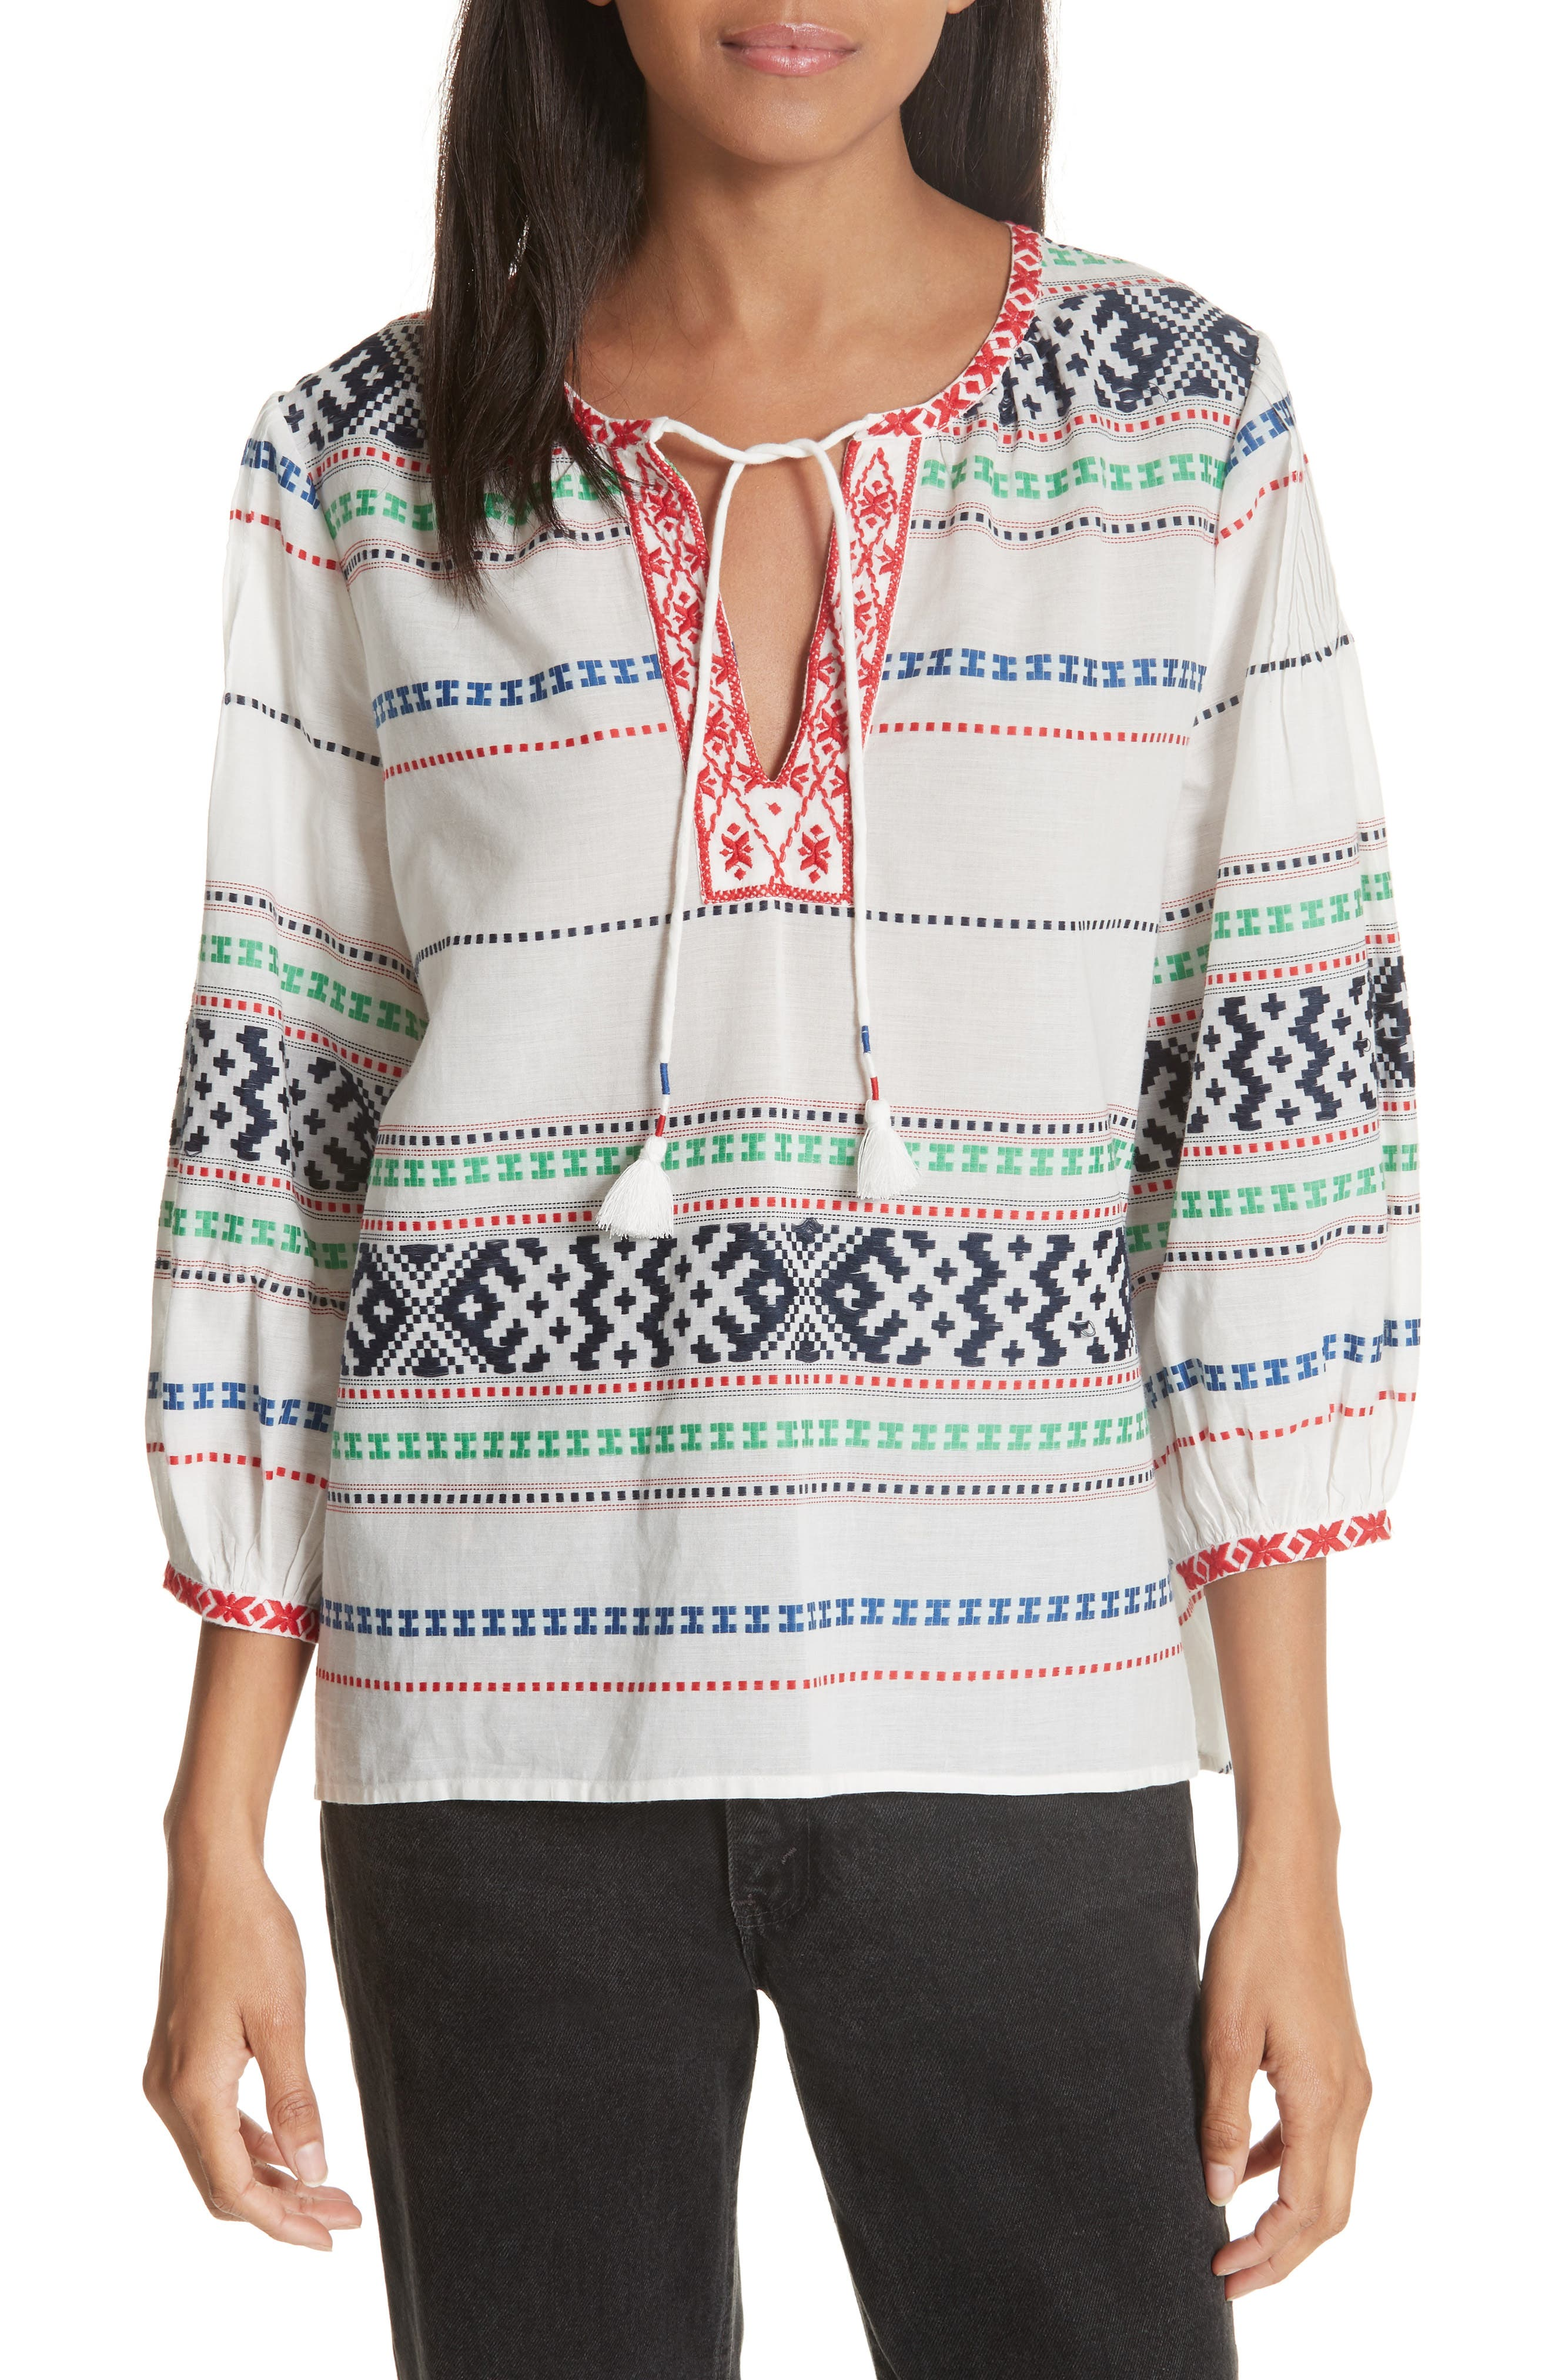 Jenollina Embroidered Top,                         Main,                         color, 114